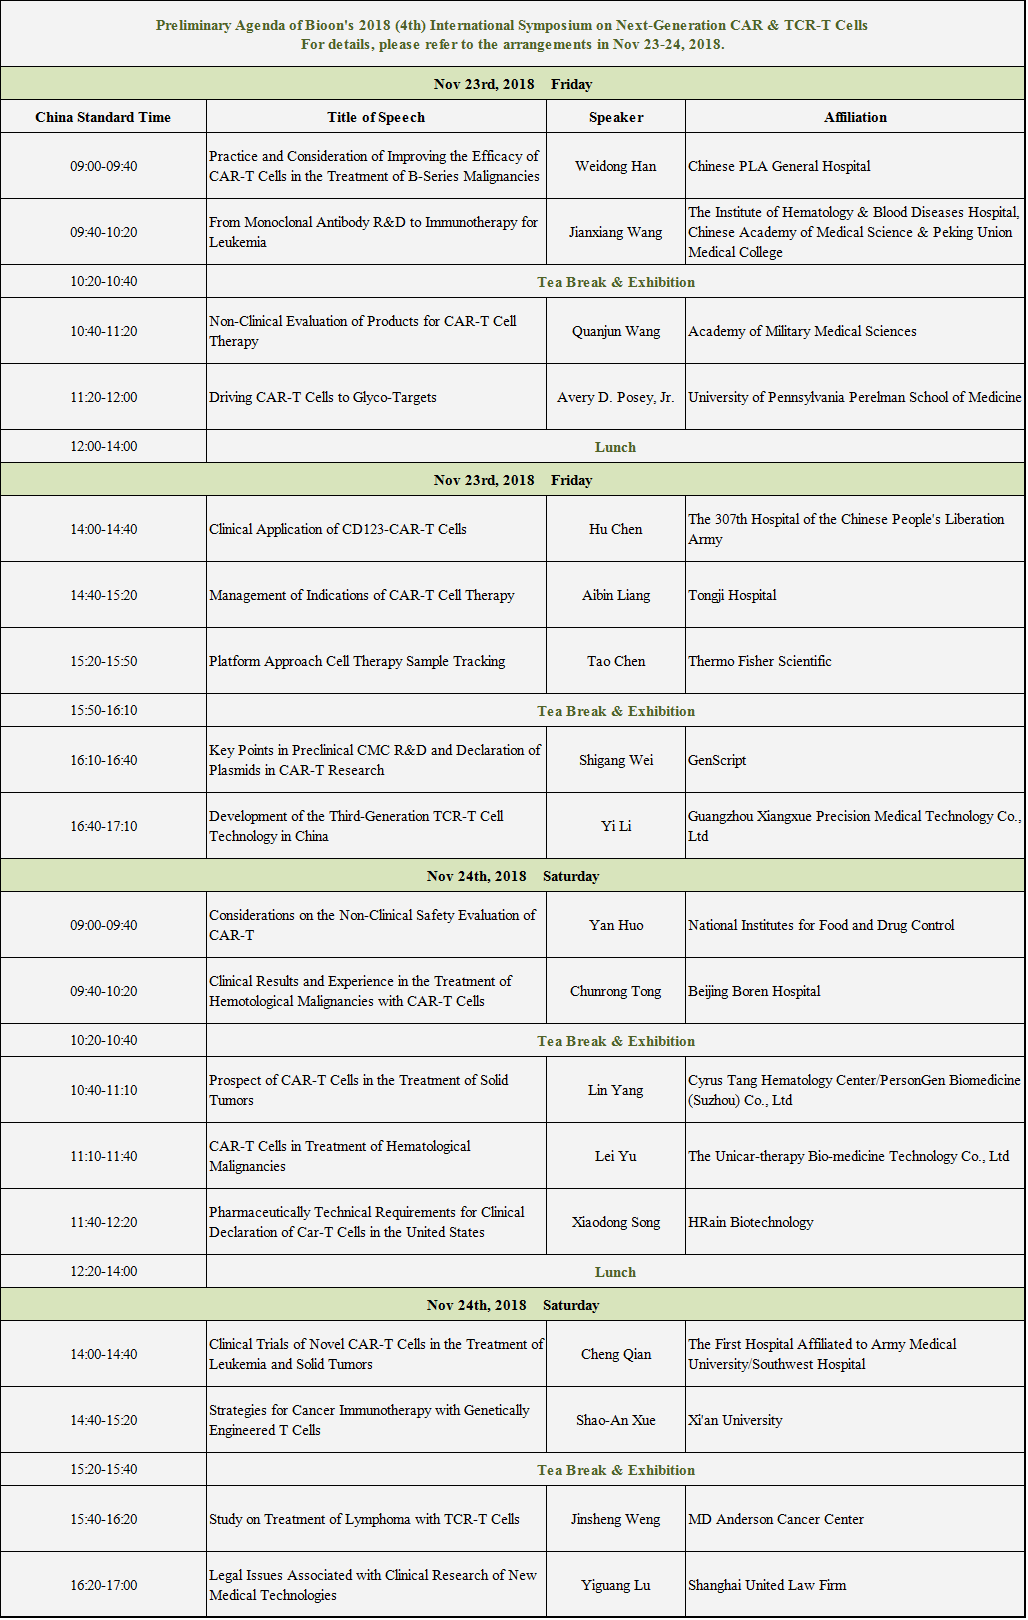 Preliminary Agenda of 2018 (4th) International Symposium on Next-Generation CAR & TCR-T Cells.png